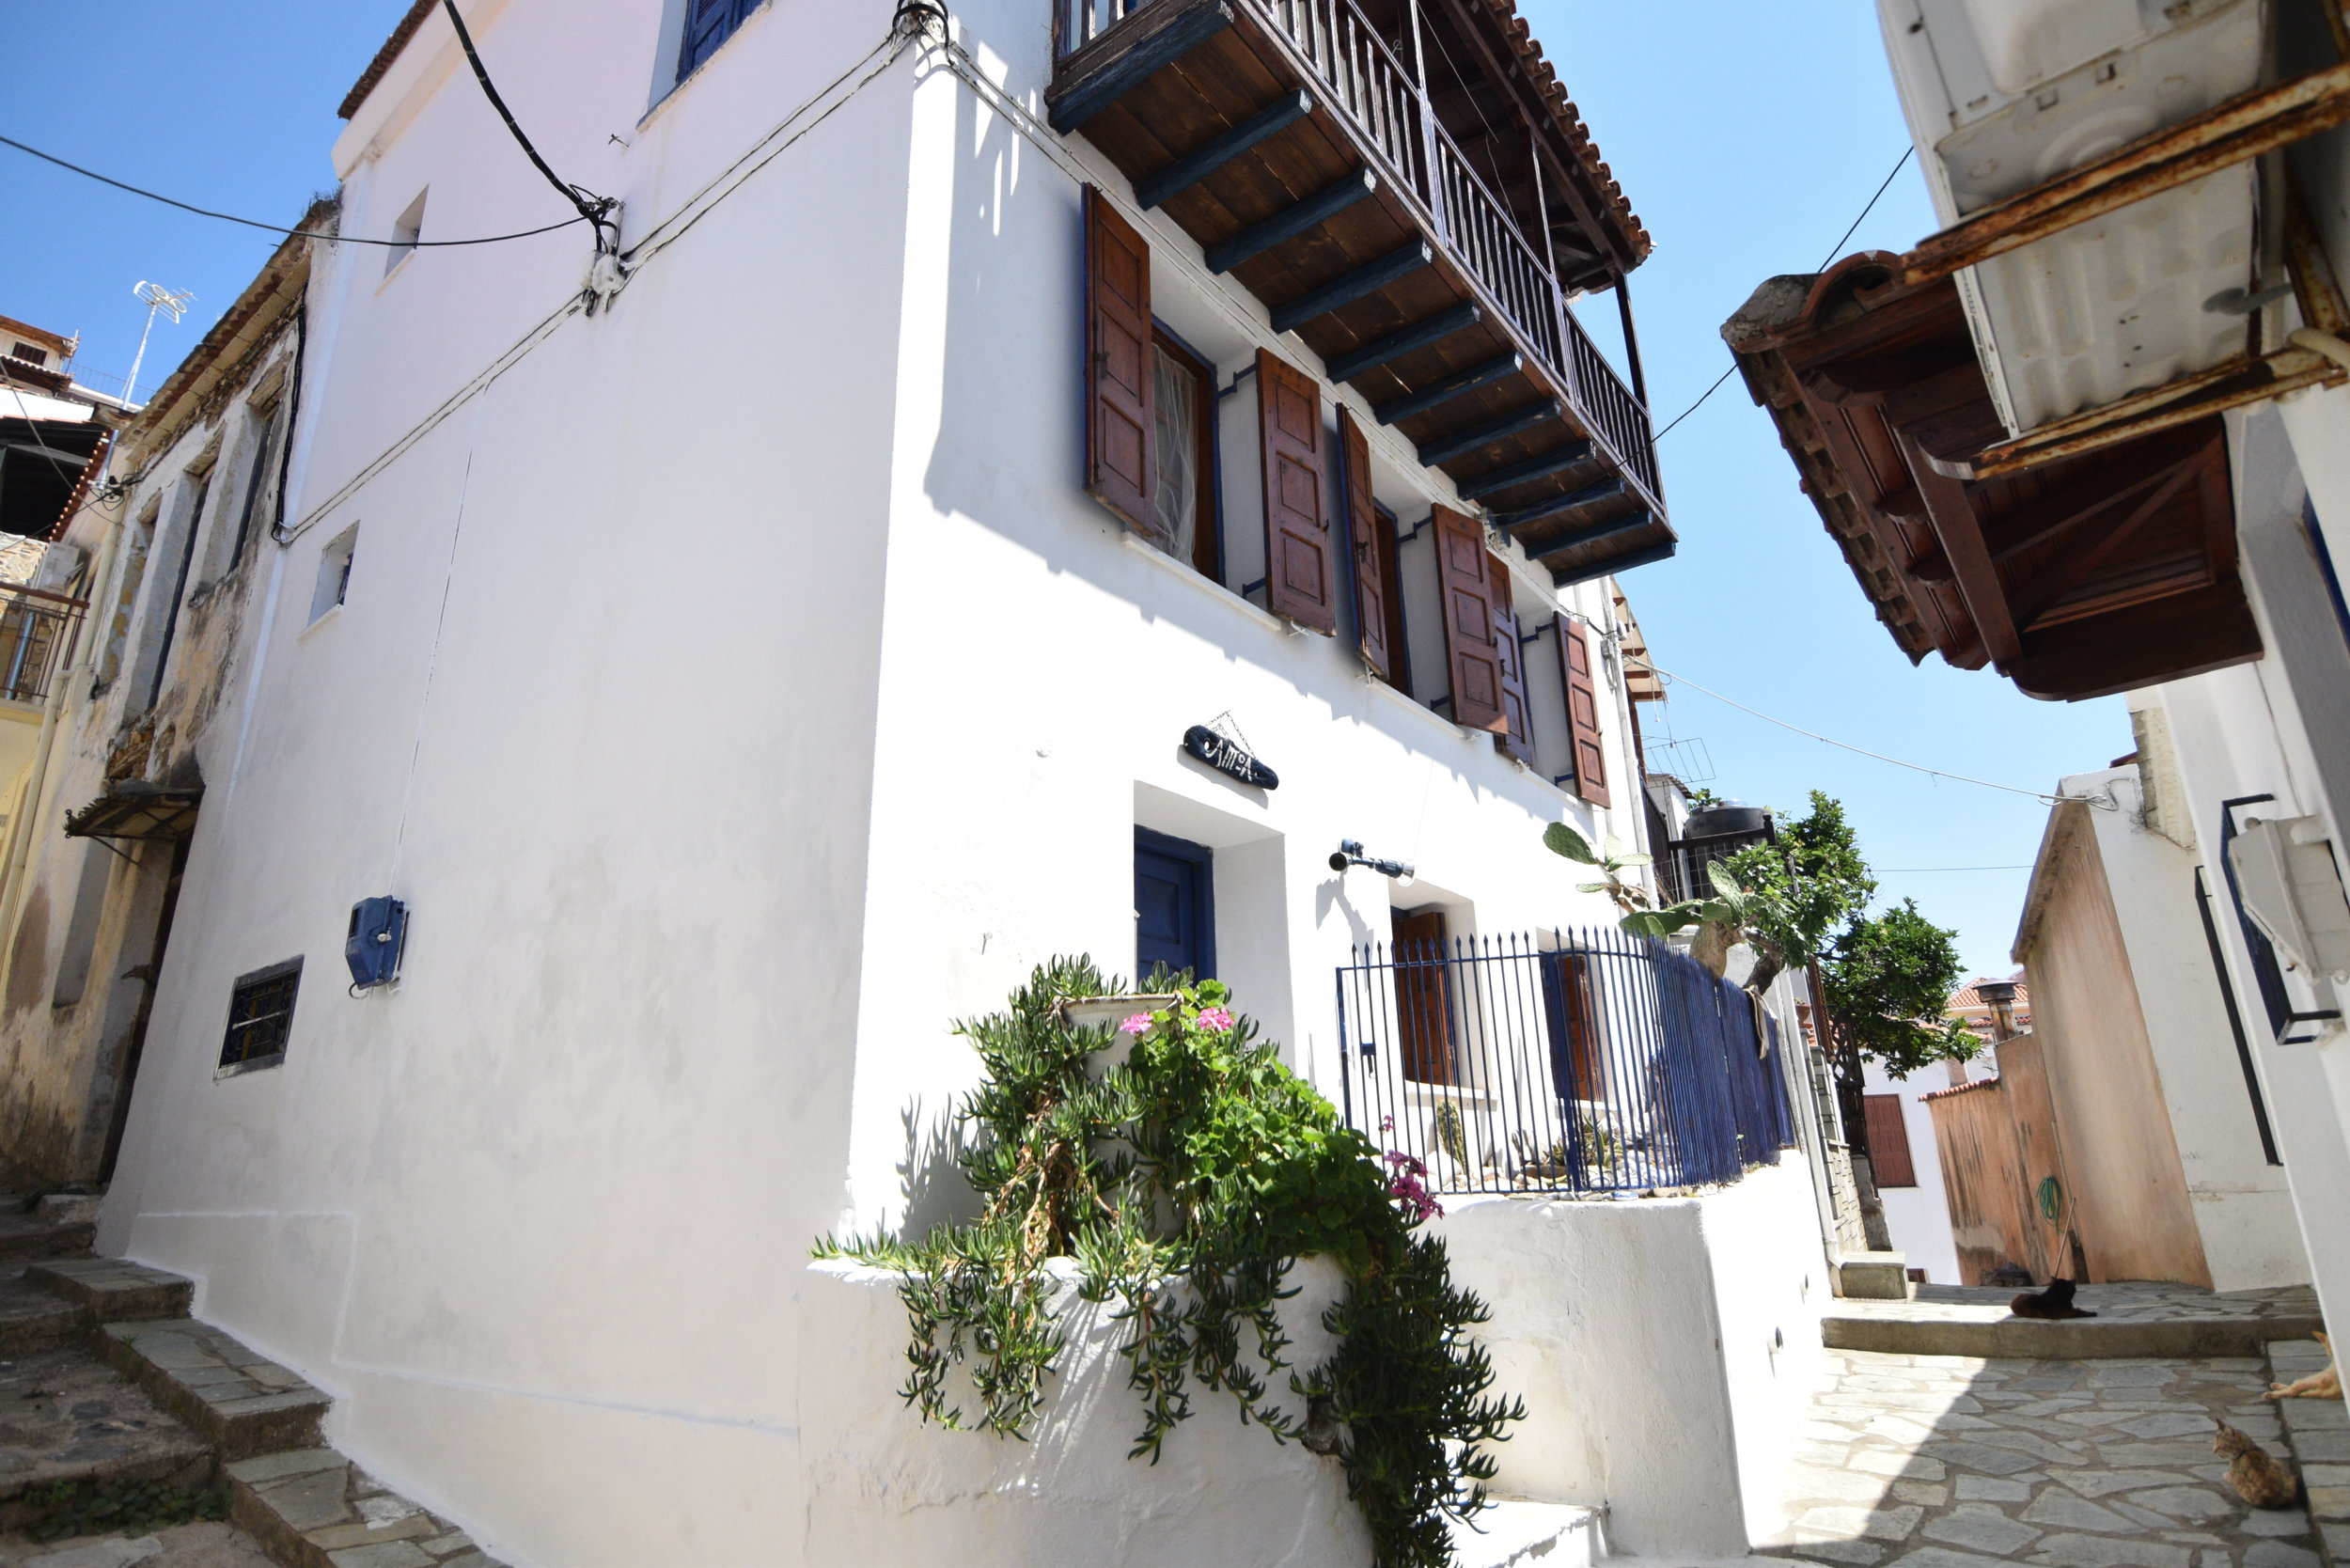 Lovely townhouse with the best view  Property number 17  Price: euro 90.000   Read more